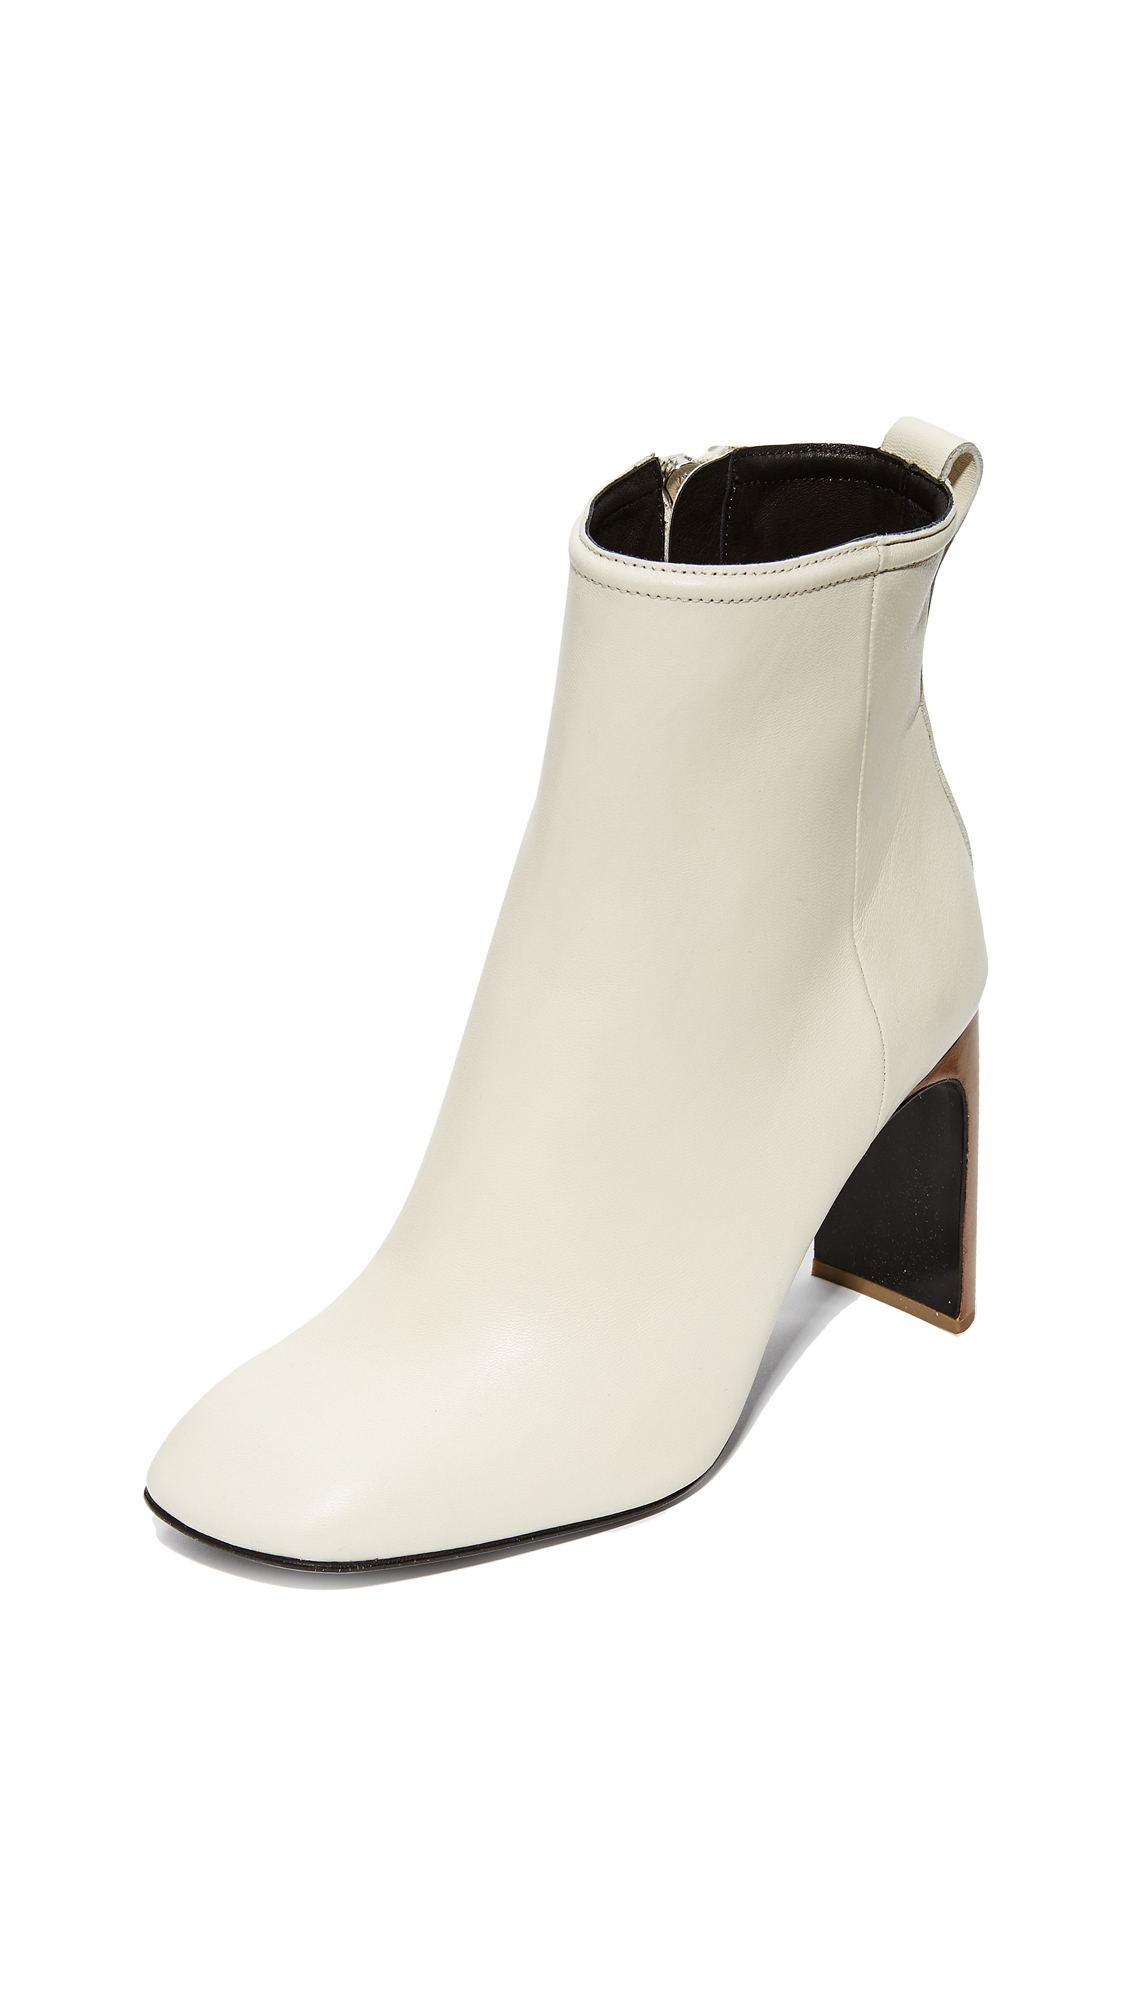 Rag & Bone Ellis Booties - Ivory